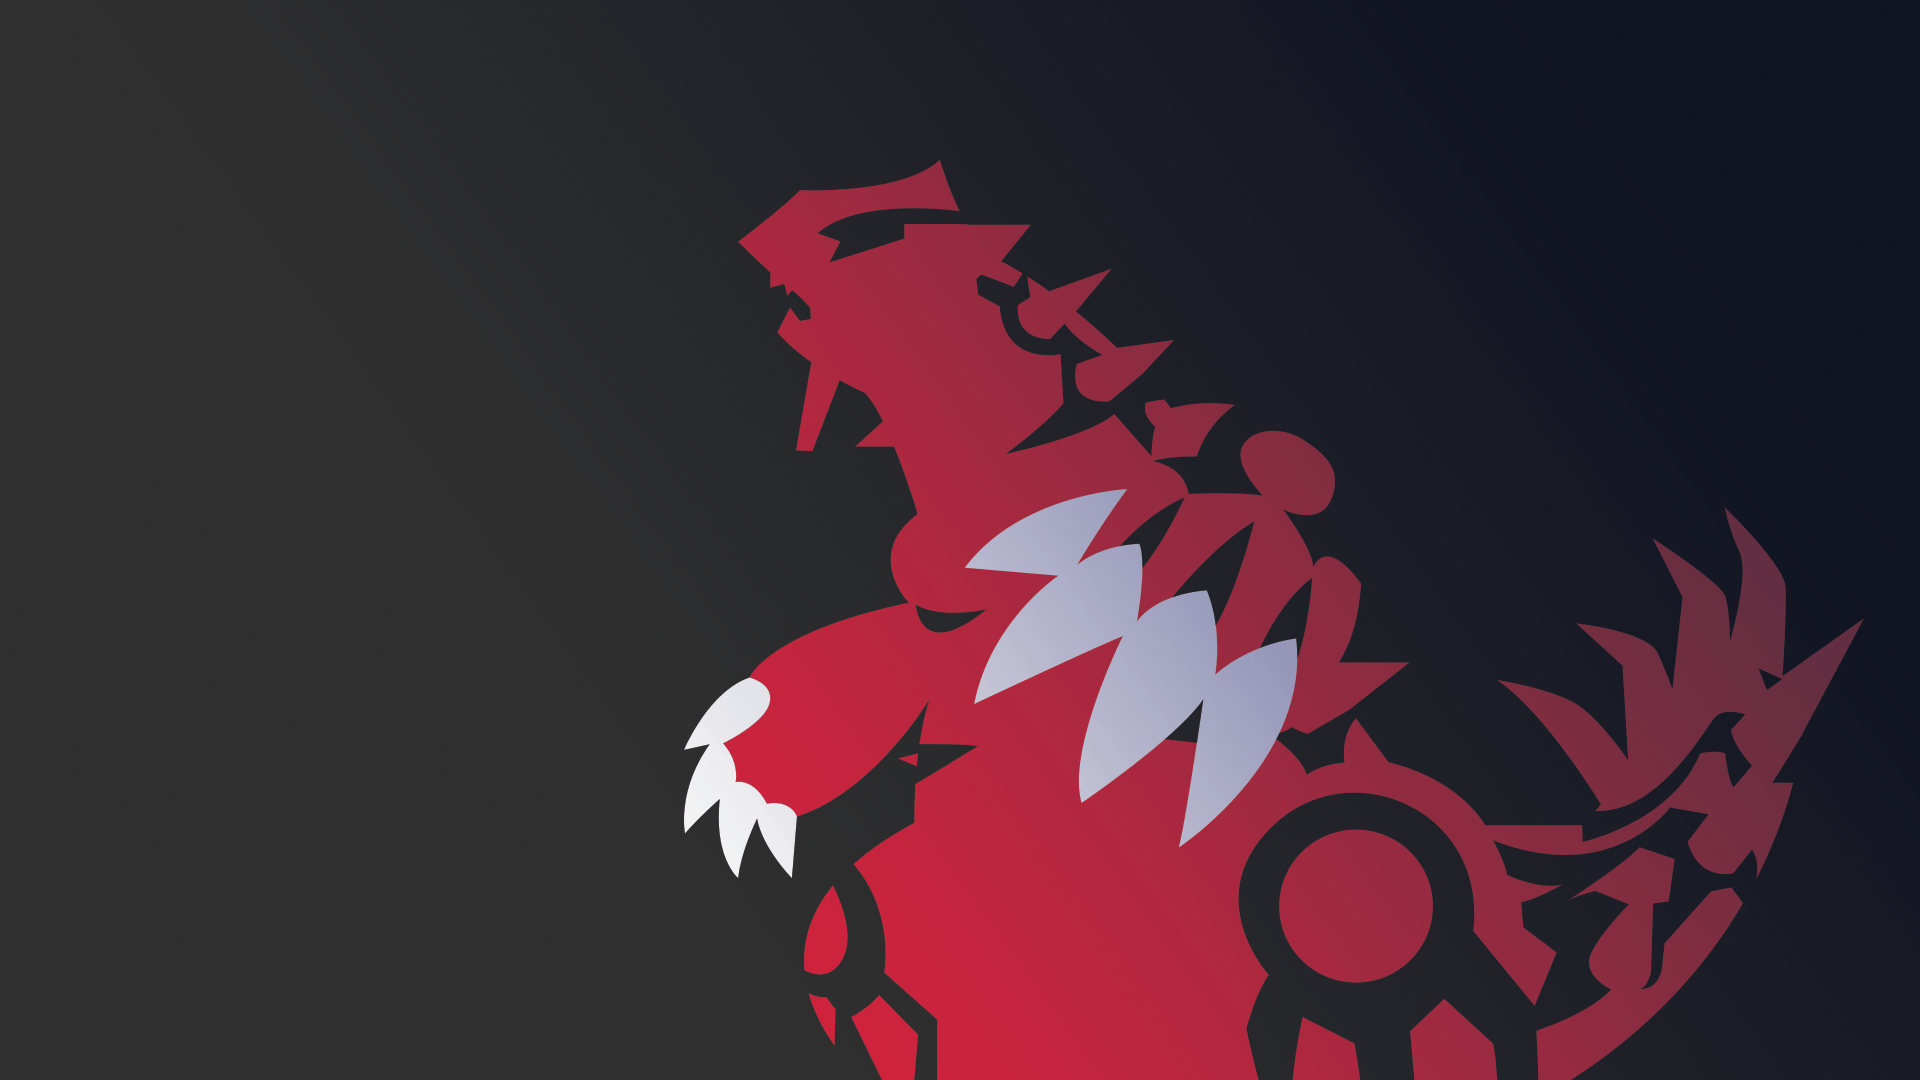 1920x1080 Pokémon Omega Ruby and Alpha Sapphire Full HD Wallpaper and ...